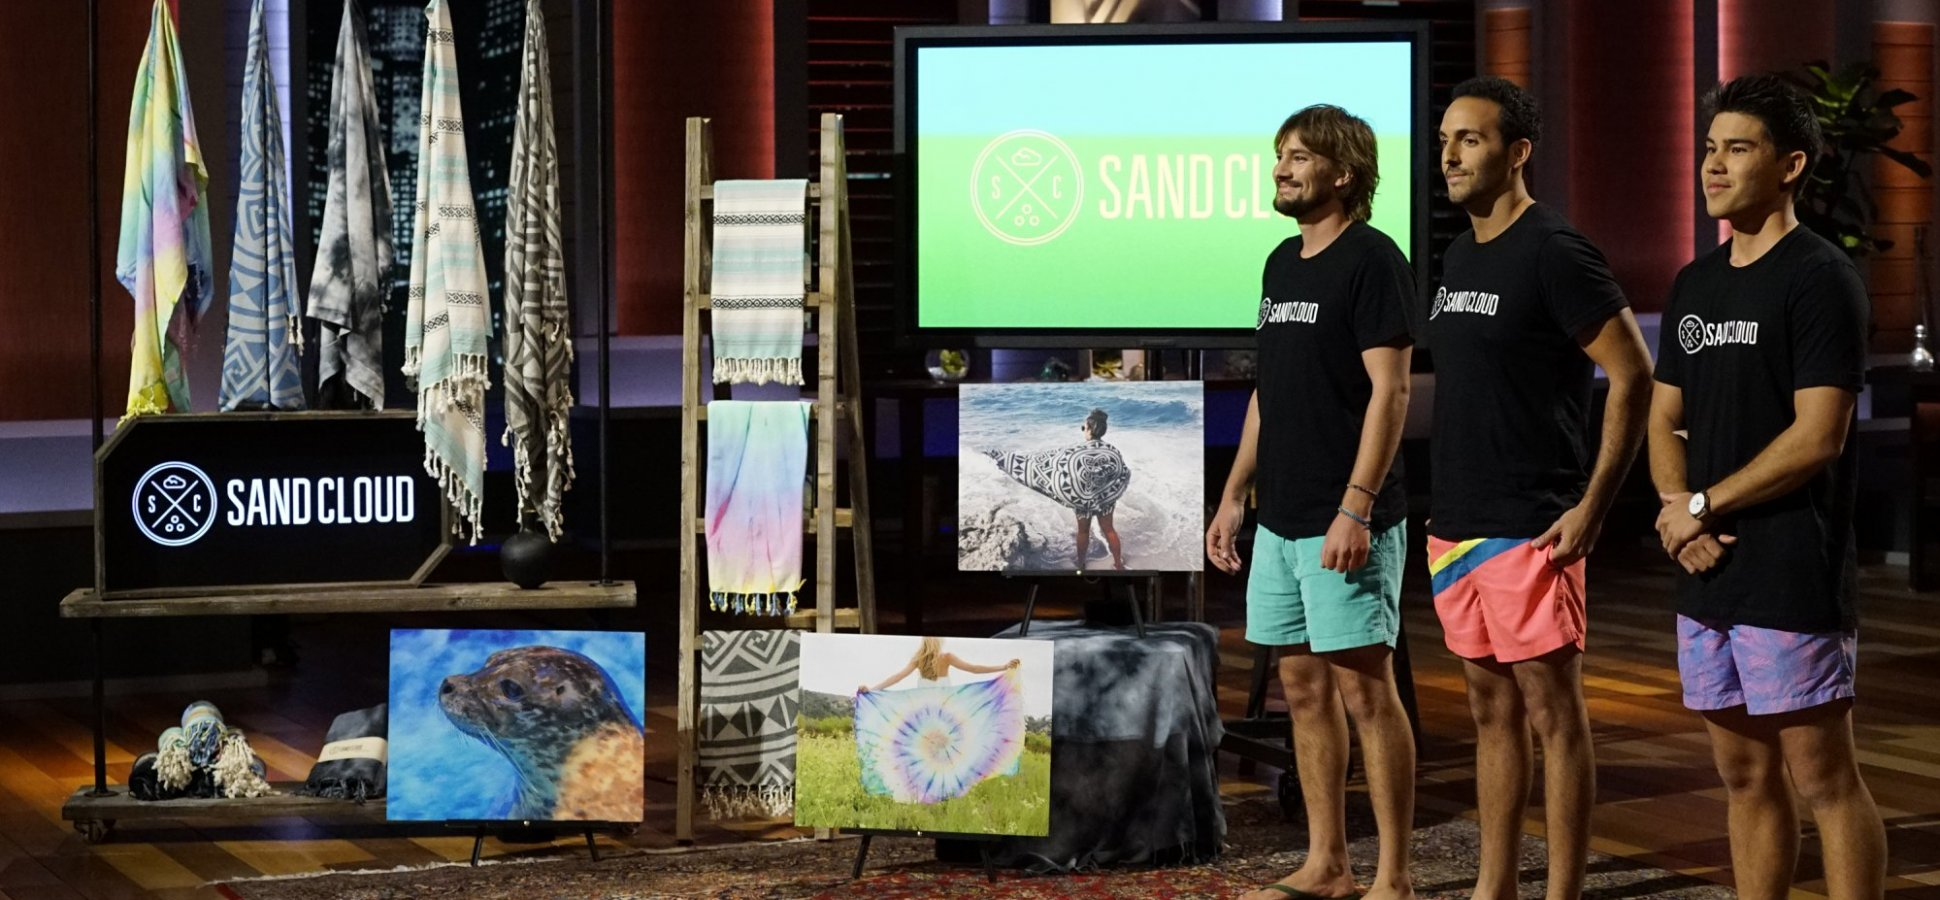 These Founders Had to Sell Their Cars to Start Their Business. One 'Shark Tank' Appearance Later, They've Got $7 Million in Revenue